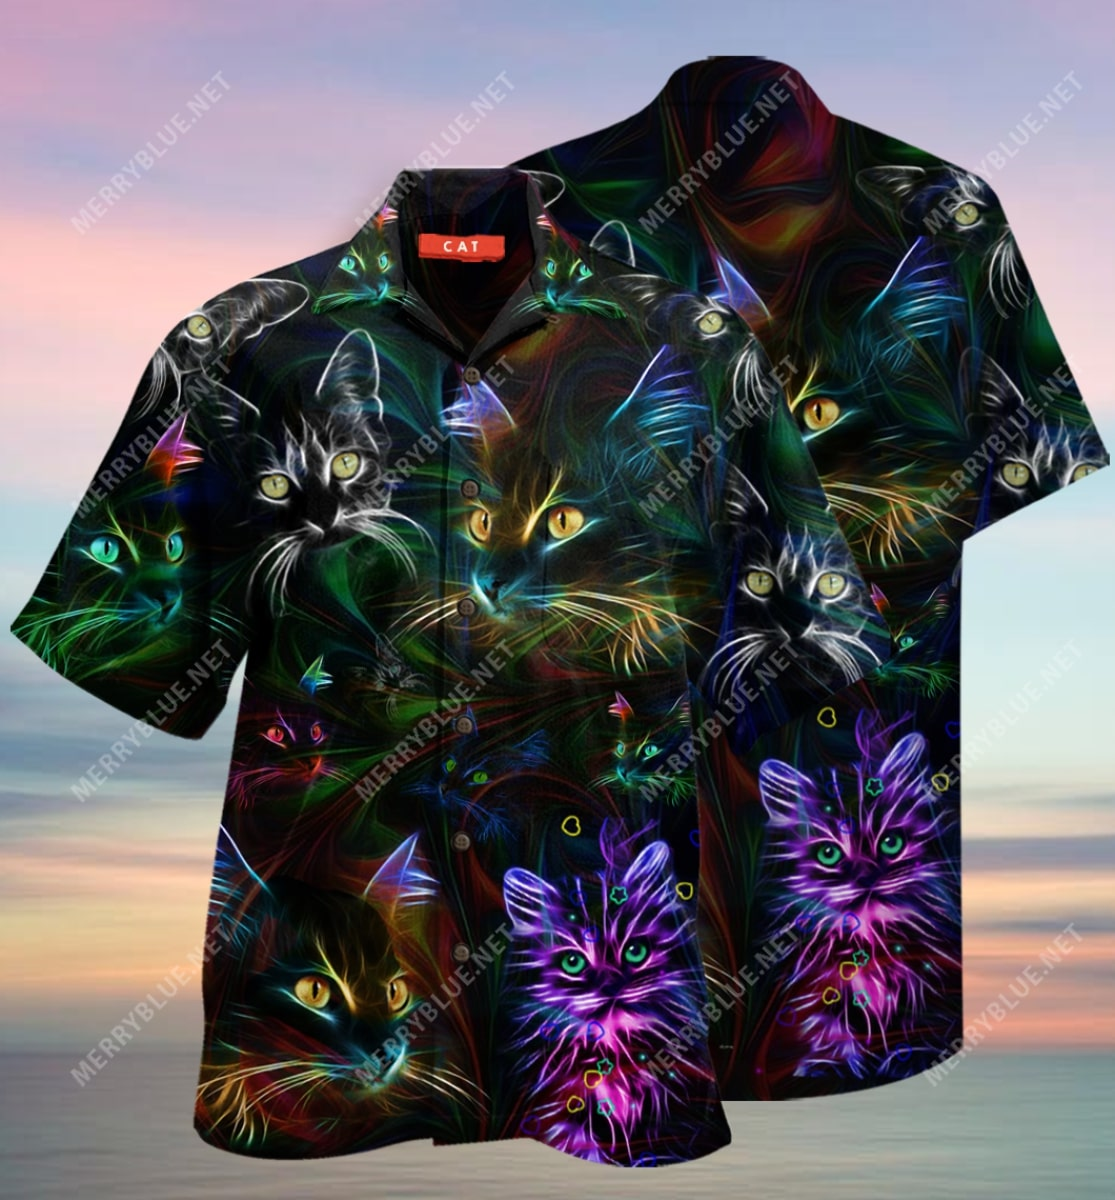 colorful cat all over printed hawaiian shirt 3